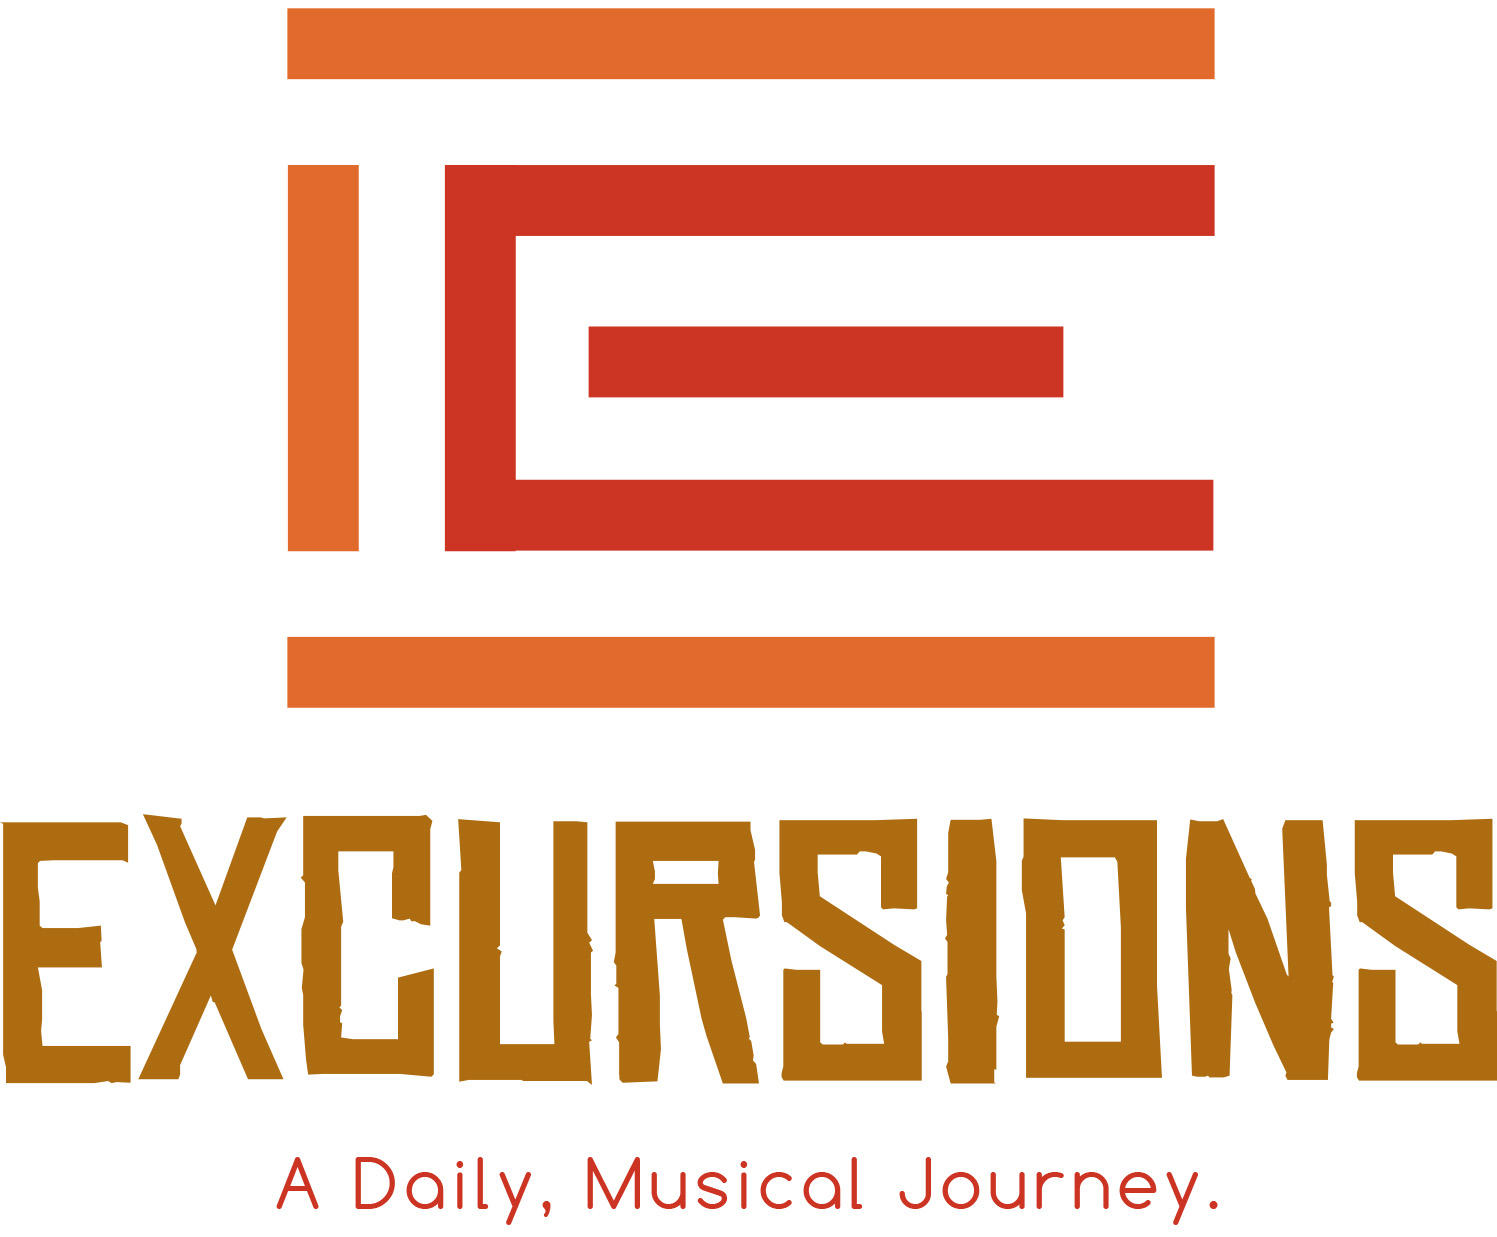 Excursions Wyso Reguler 2dweekdays Like The Name Suggests Is A Daily Journey Across Musical Genres And Eras Niki Dakota Guides Listeners Through Broad Cross Section Of